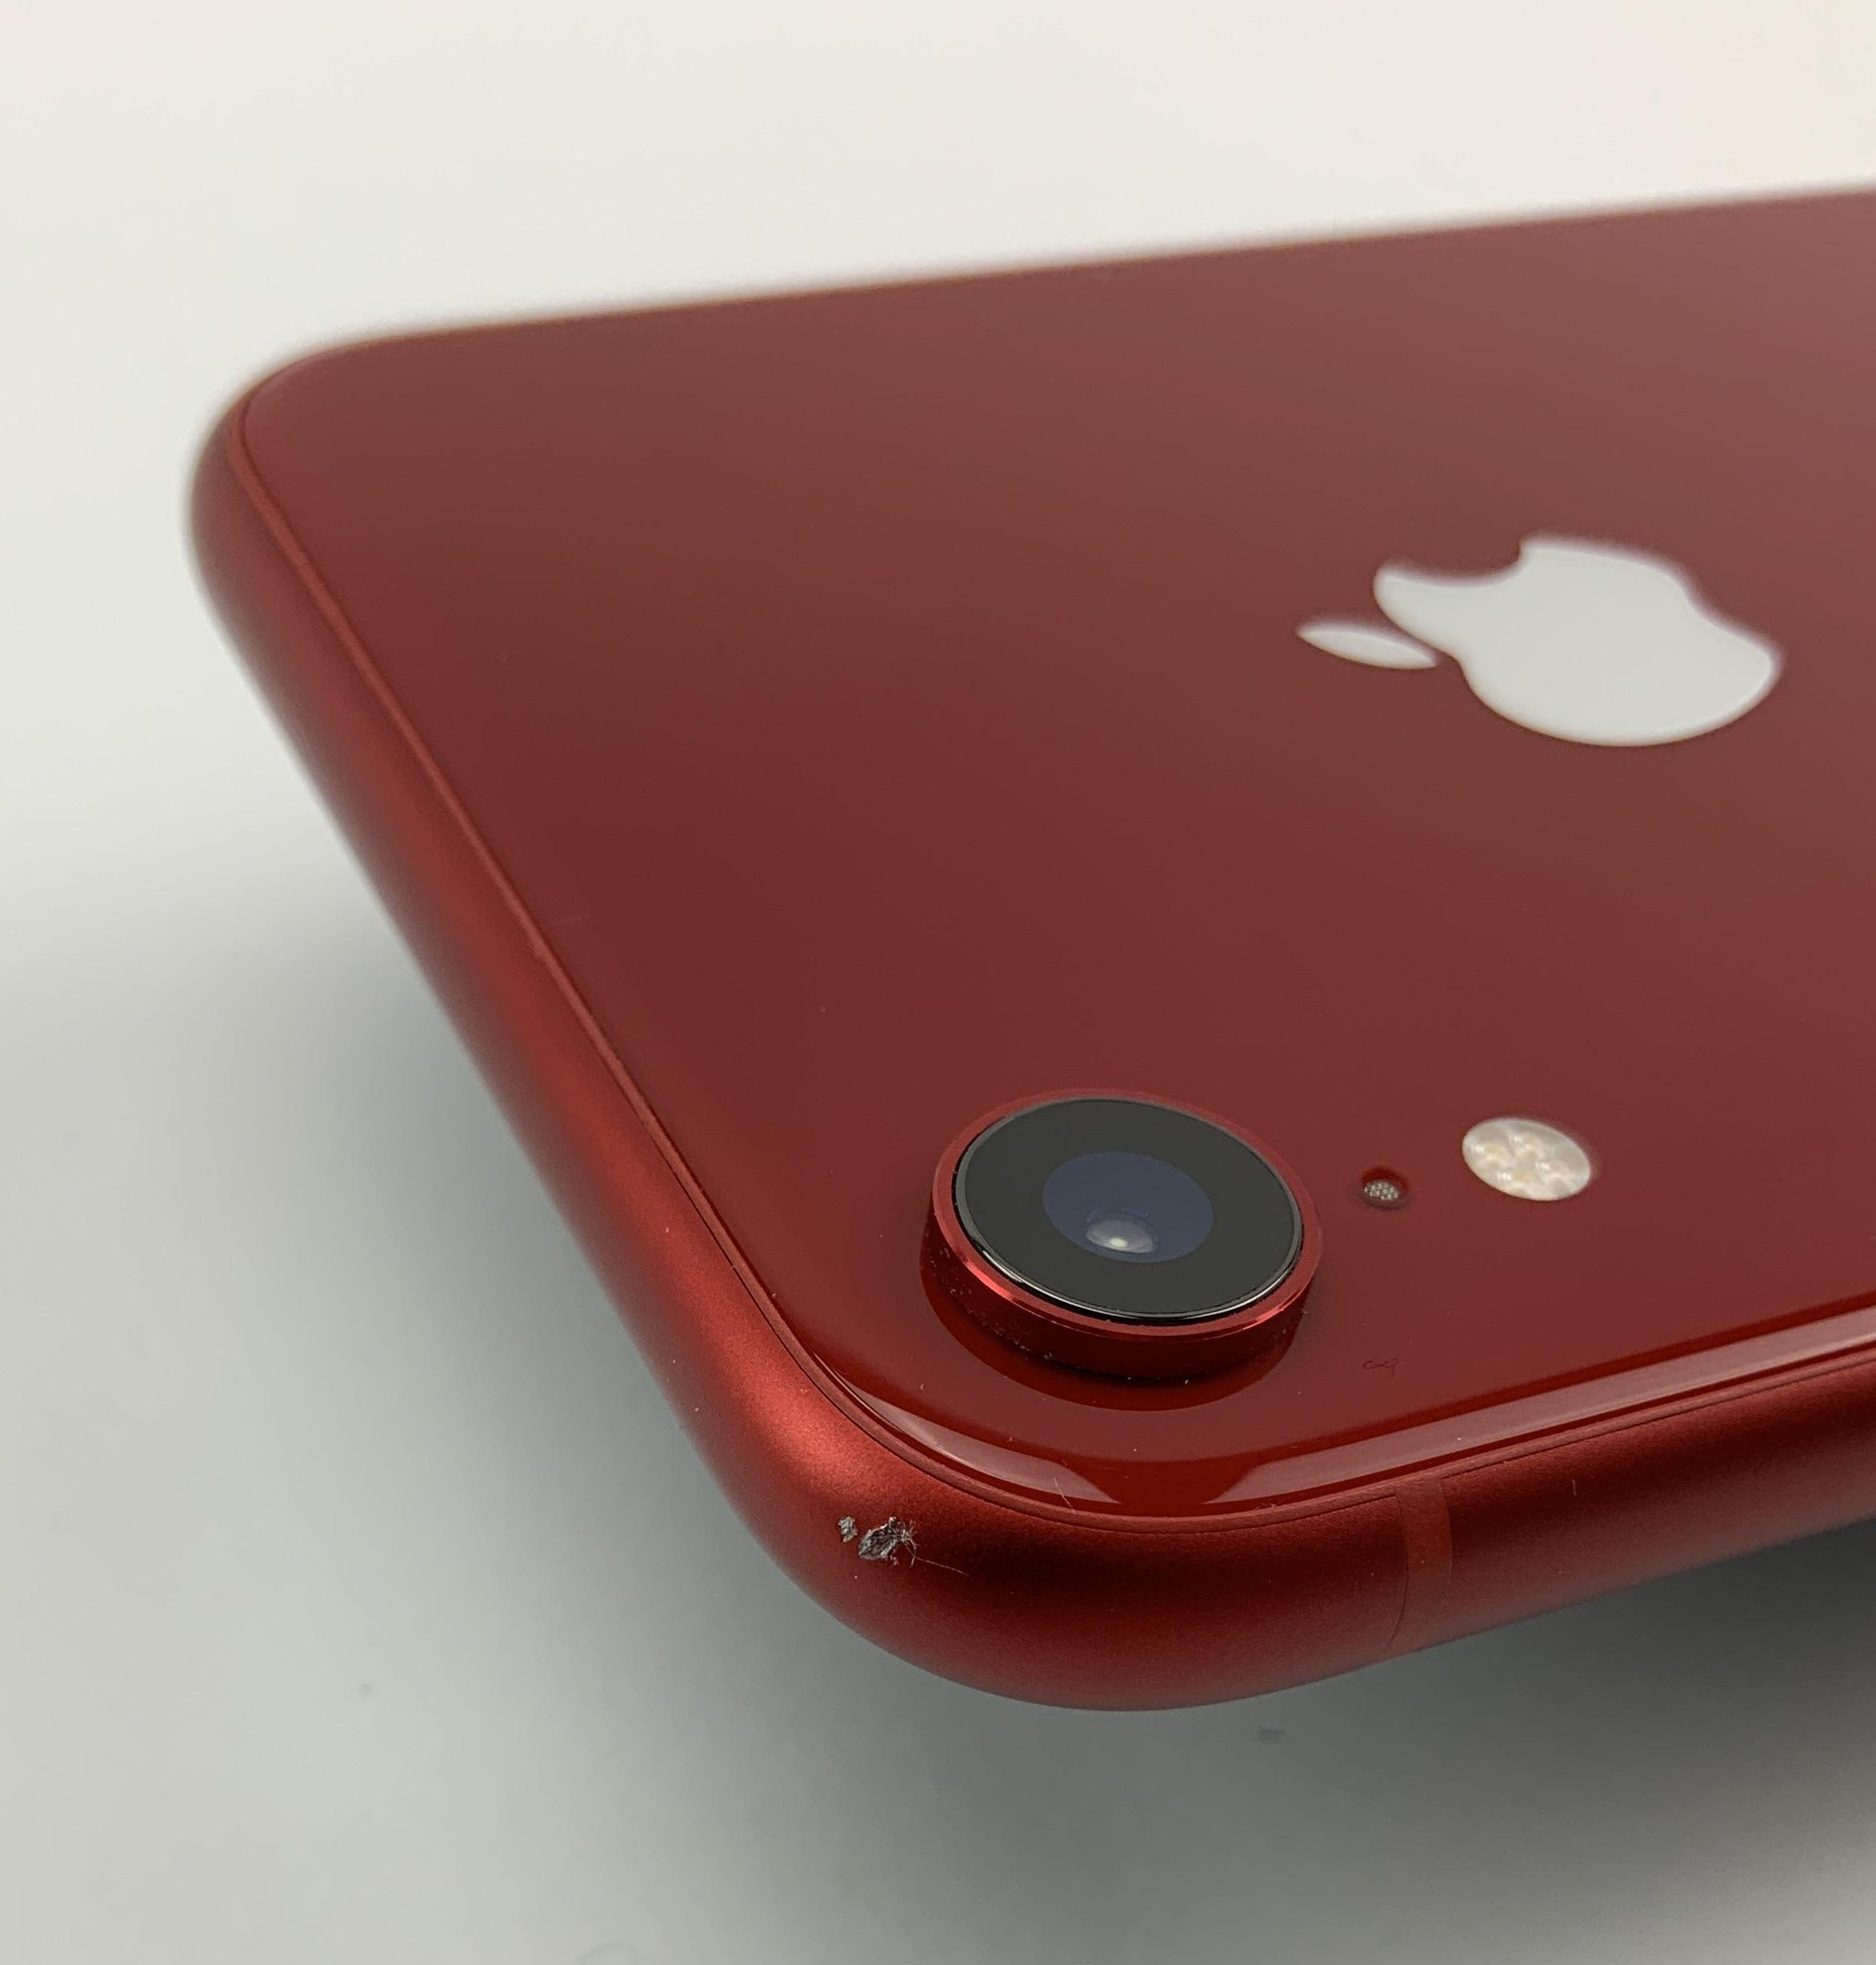 iPhone XR 64GB, 64GB, Red, Afbeelding 3